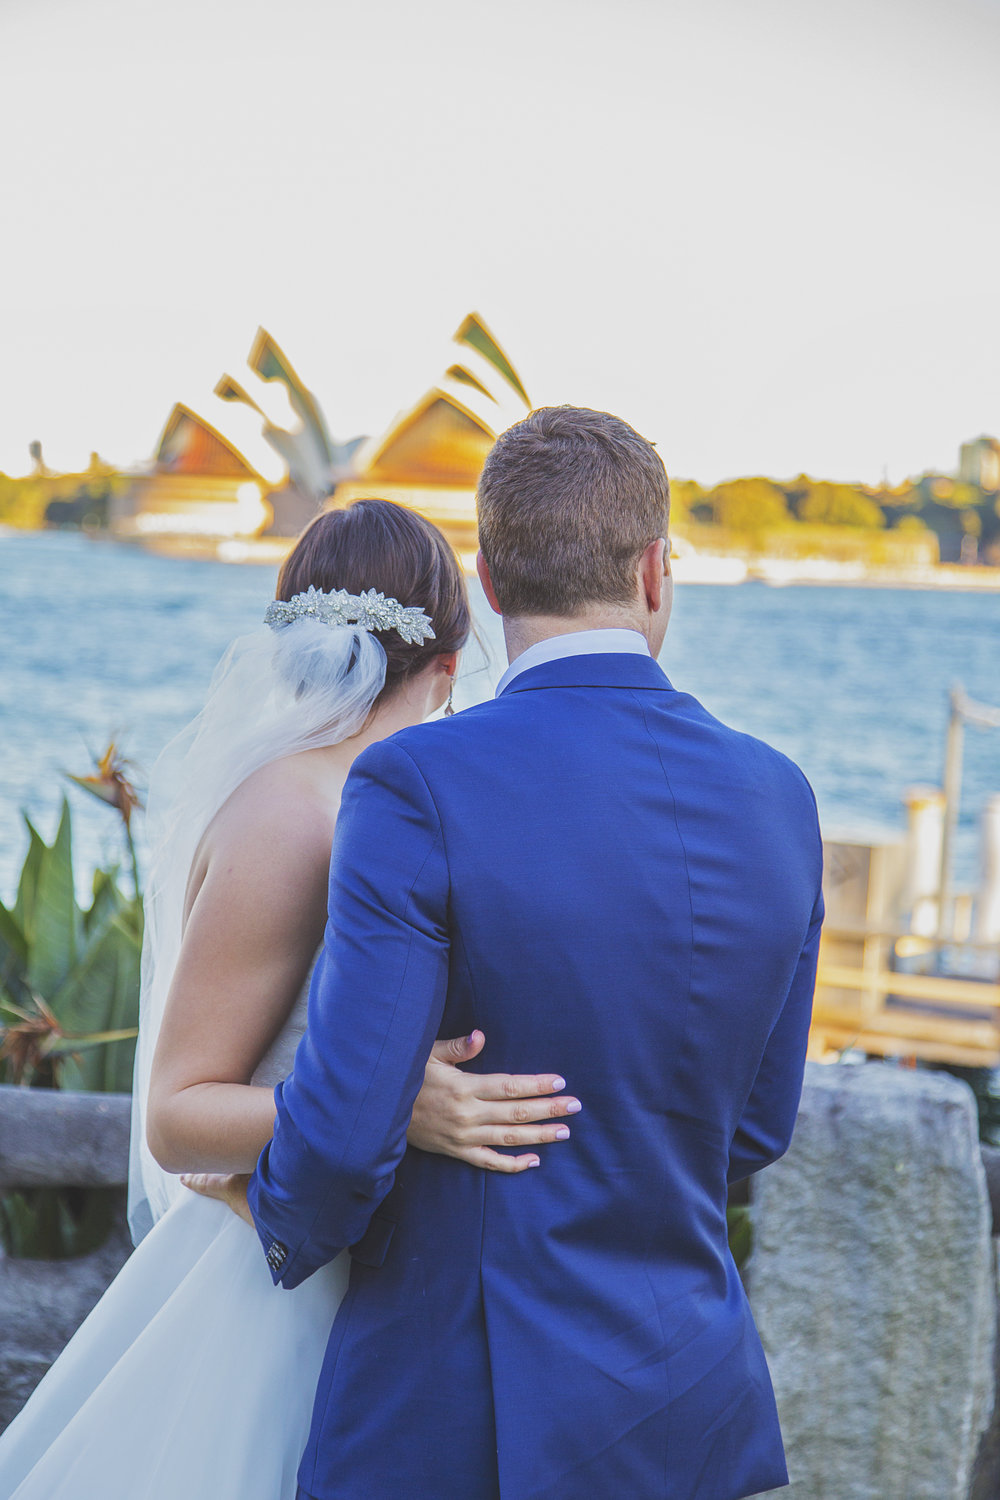 Perfect Day - A beautiful ceremony, two nights in a luxury hotel and a degustation menu at a hatted restaurant. The perfect way to elope and enjoy a romantic time in one of the most beautiful cities in the world for just $3,999.For package inclusions click here.